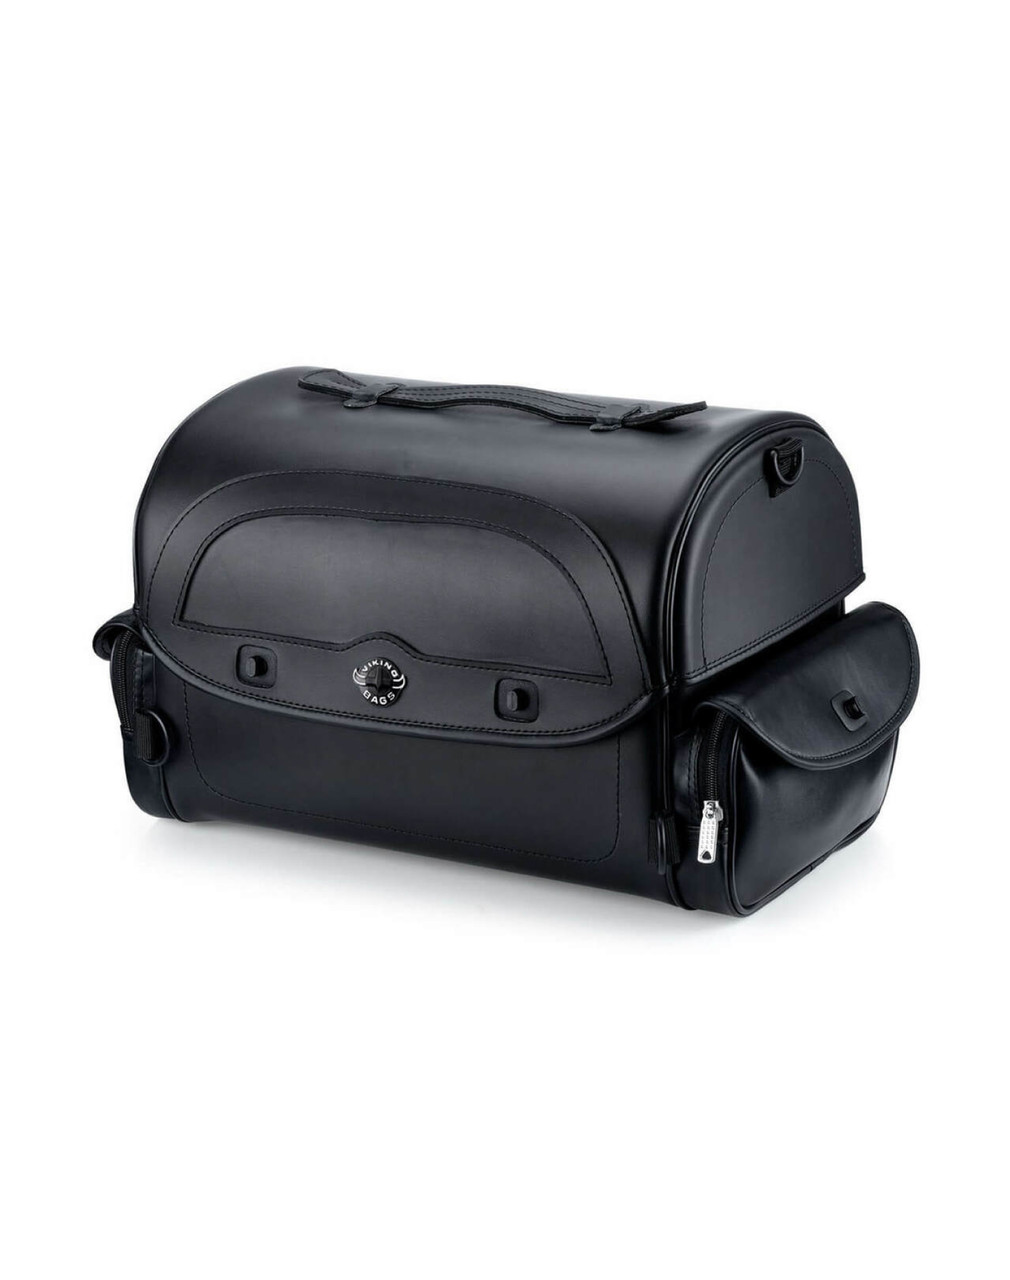 Viking Warrior Motorcycle Trunk 2400 Cubic Inches Main View